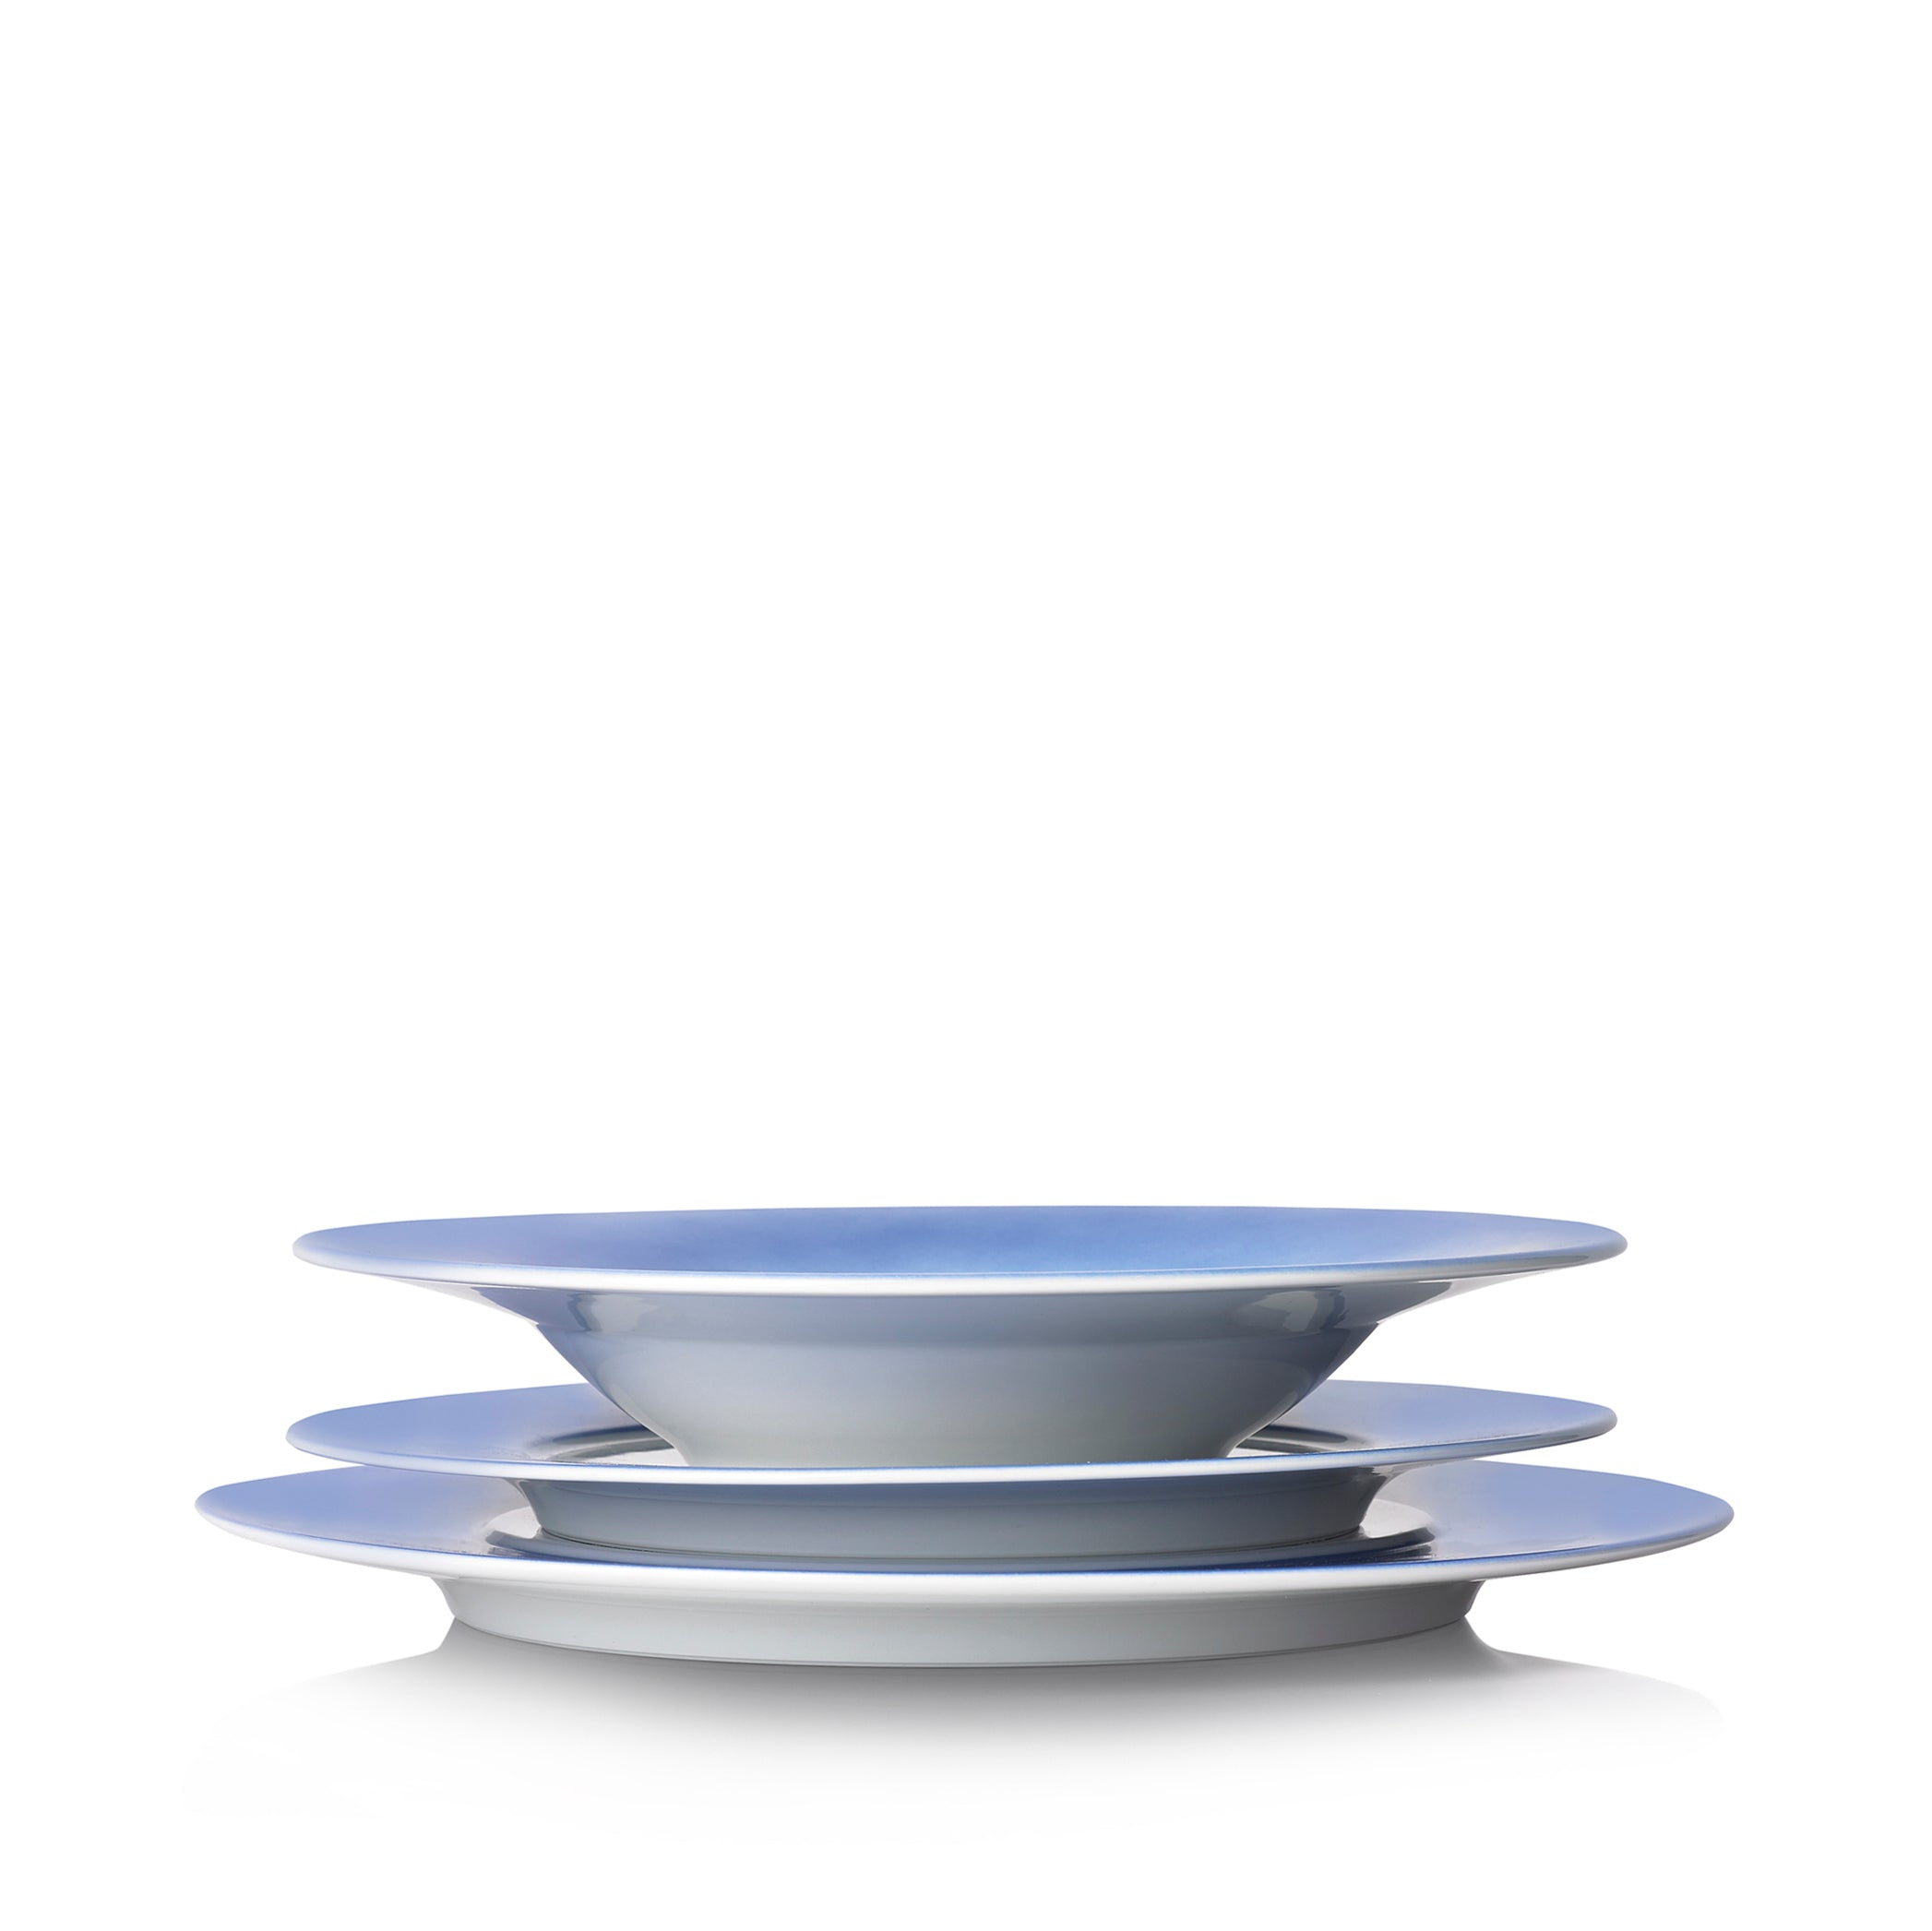 S&B 28cm Porcelain Pasta Bowl with Blue Edge